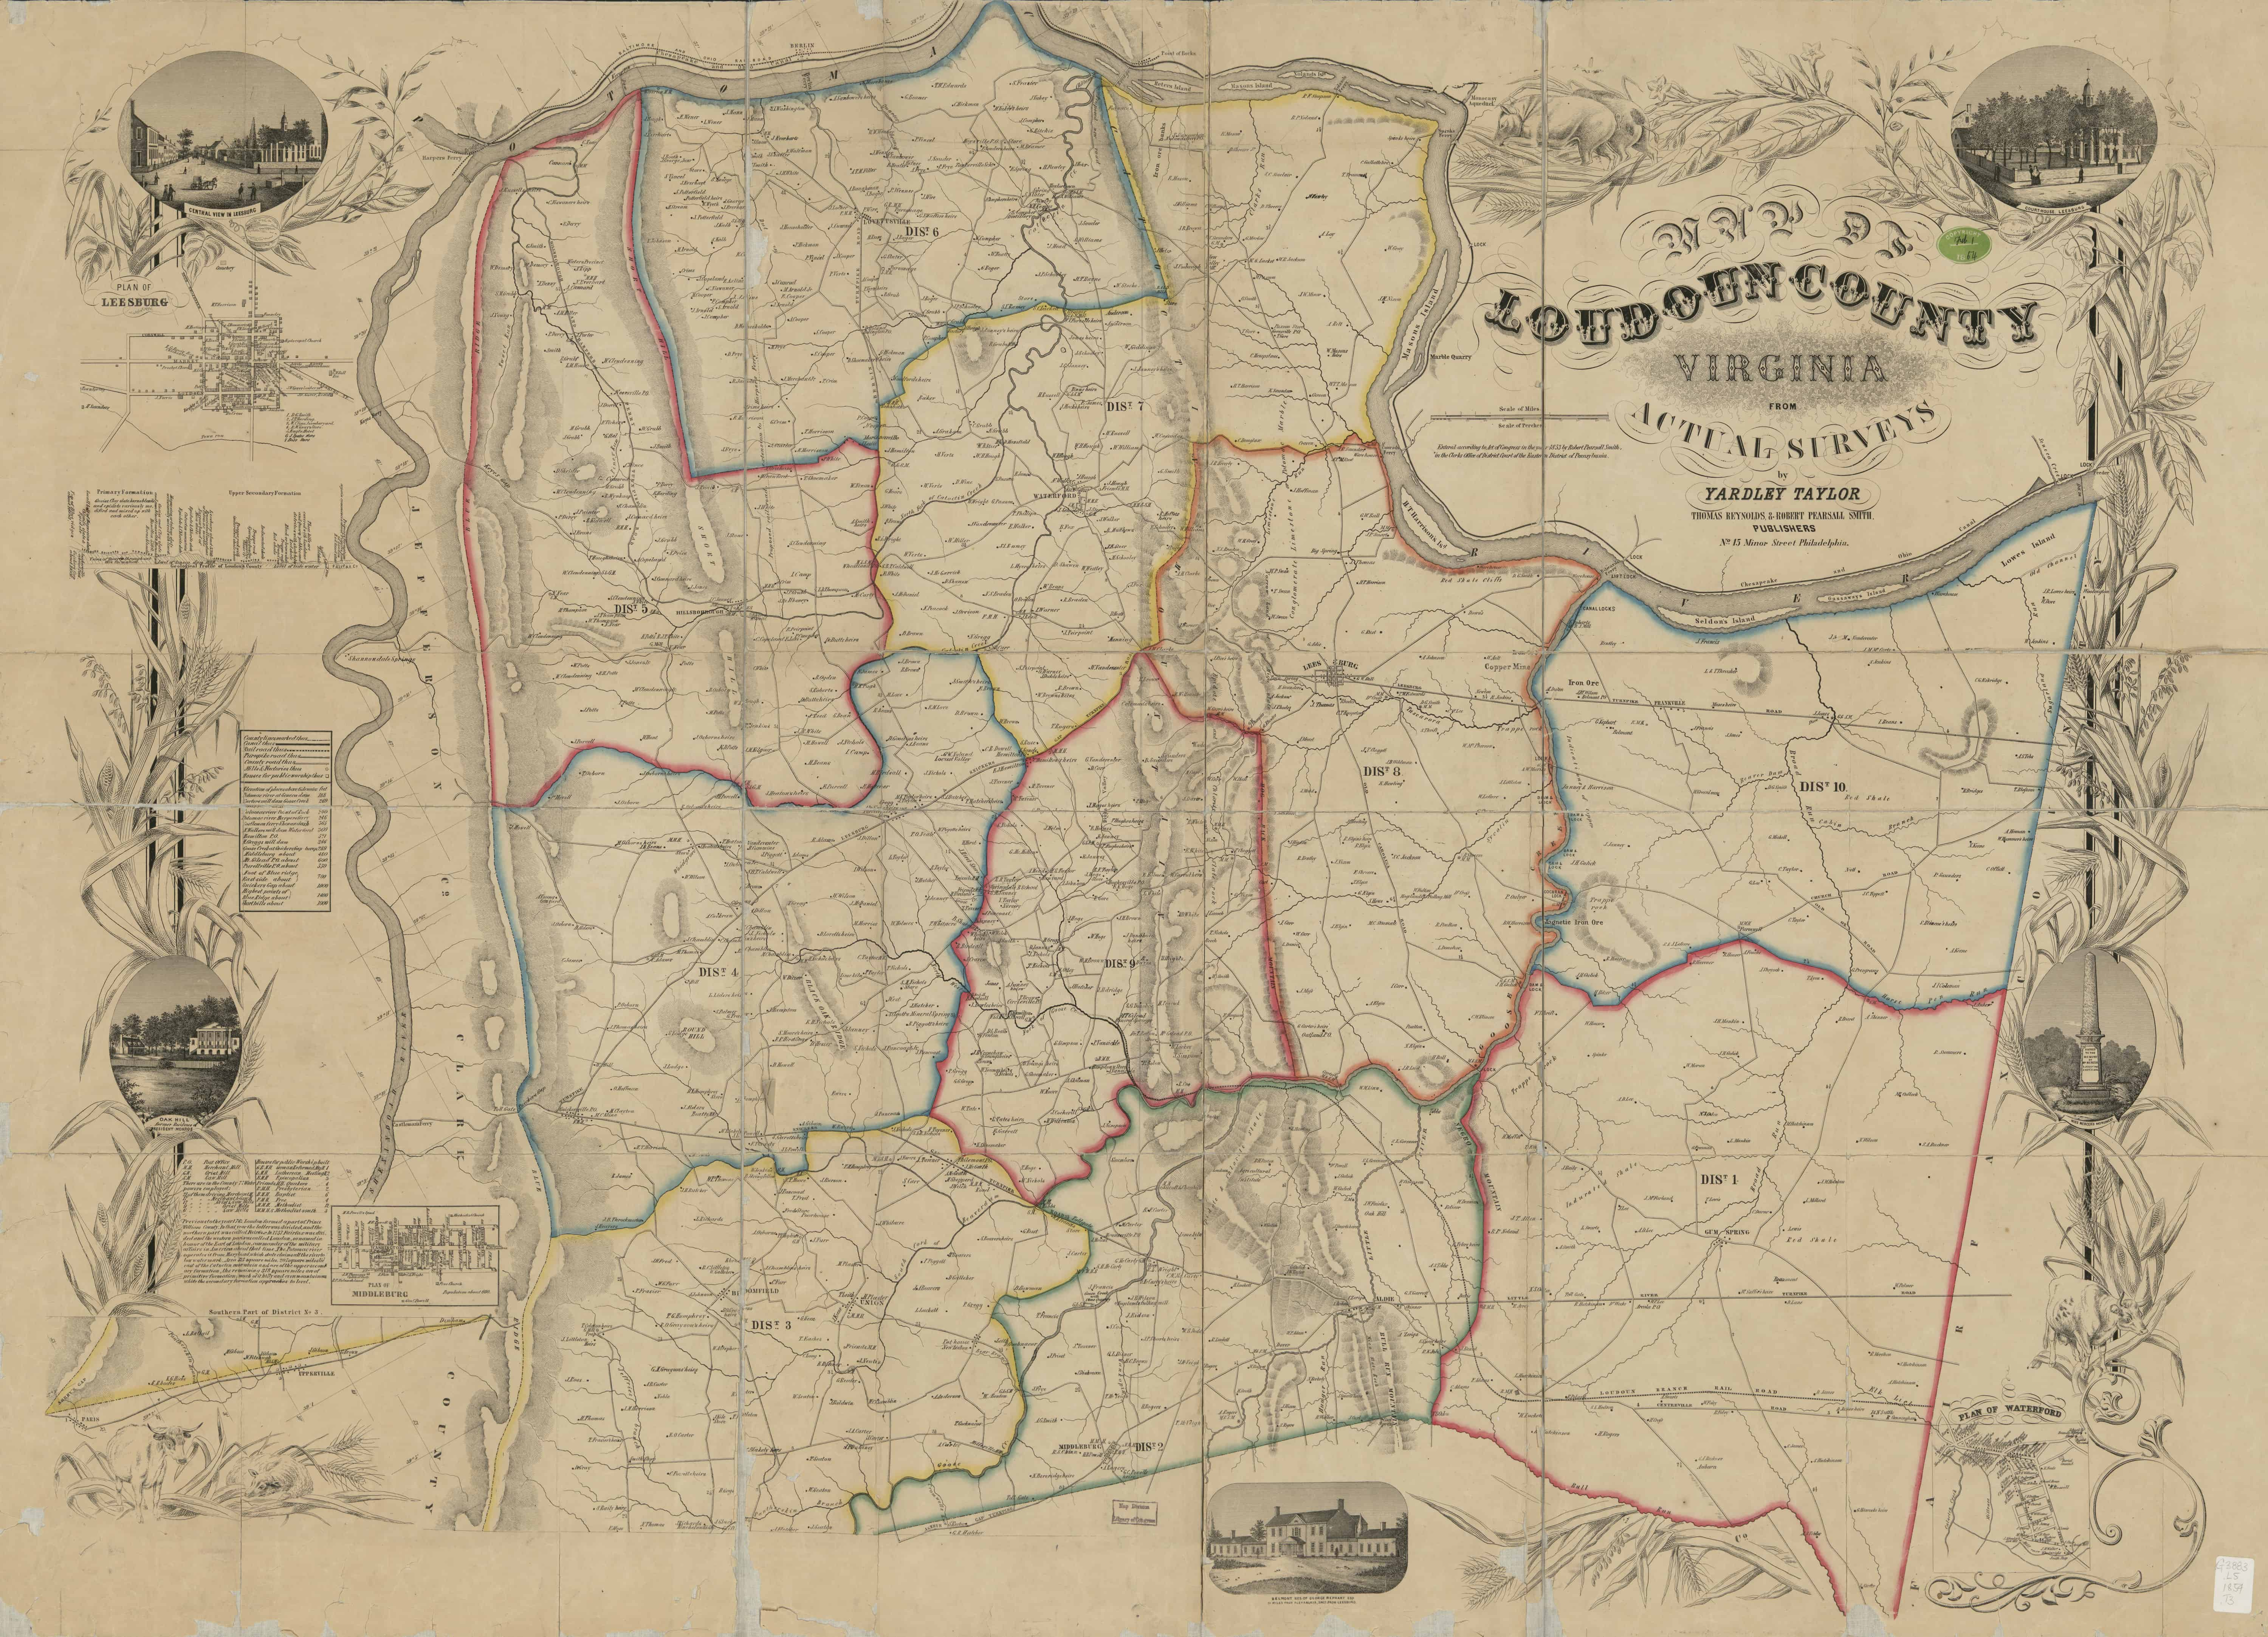 YardleyTaylor Map of Loudoun County Dated 1854 History of